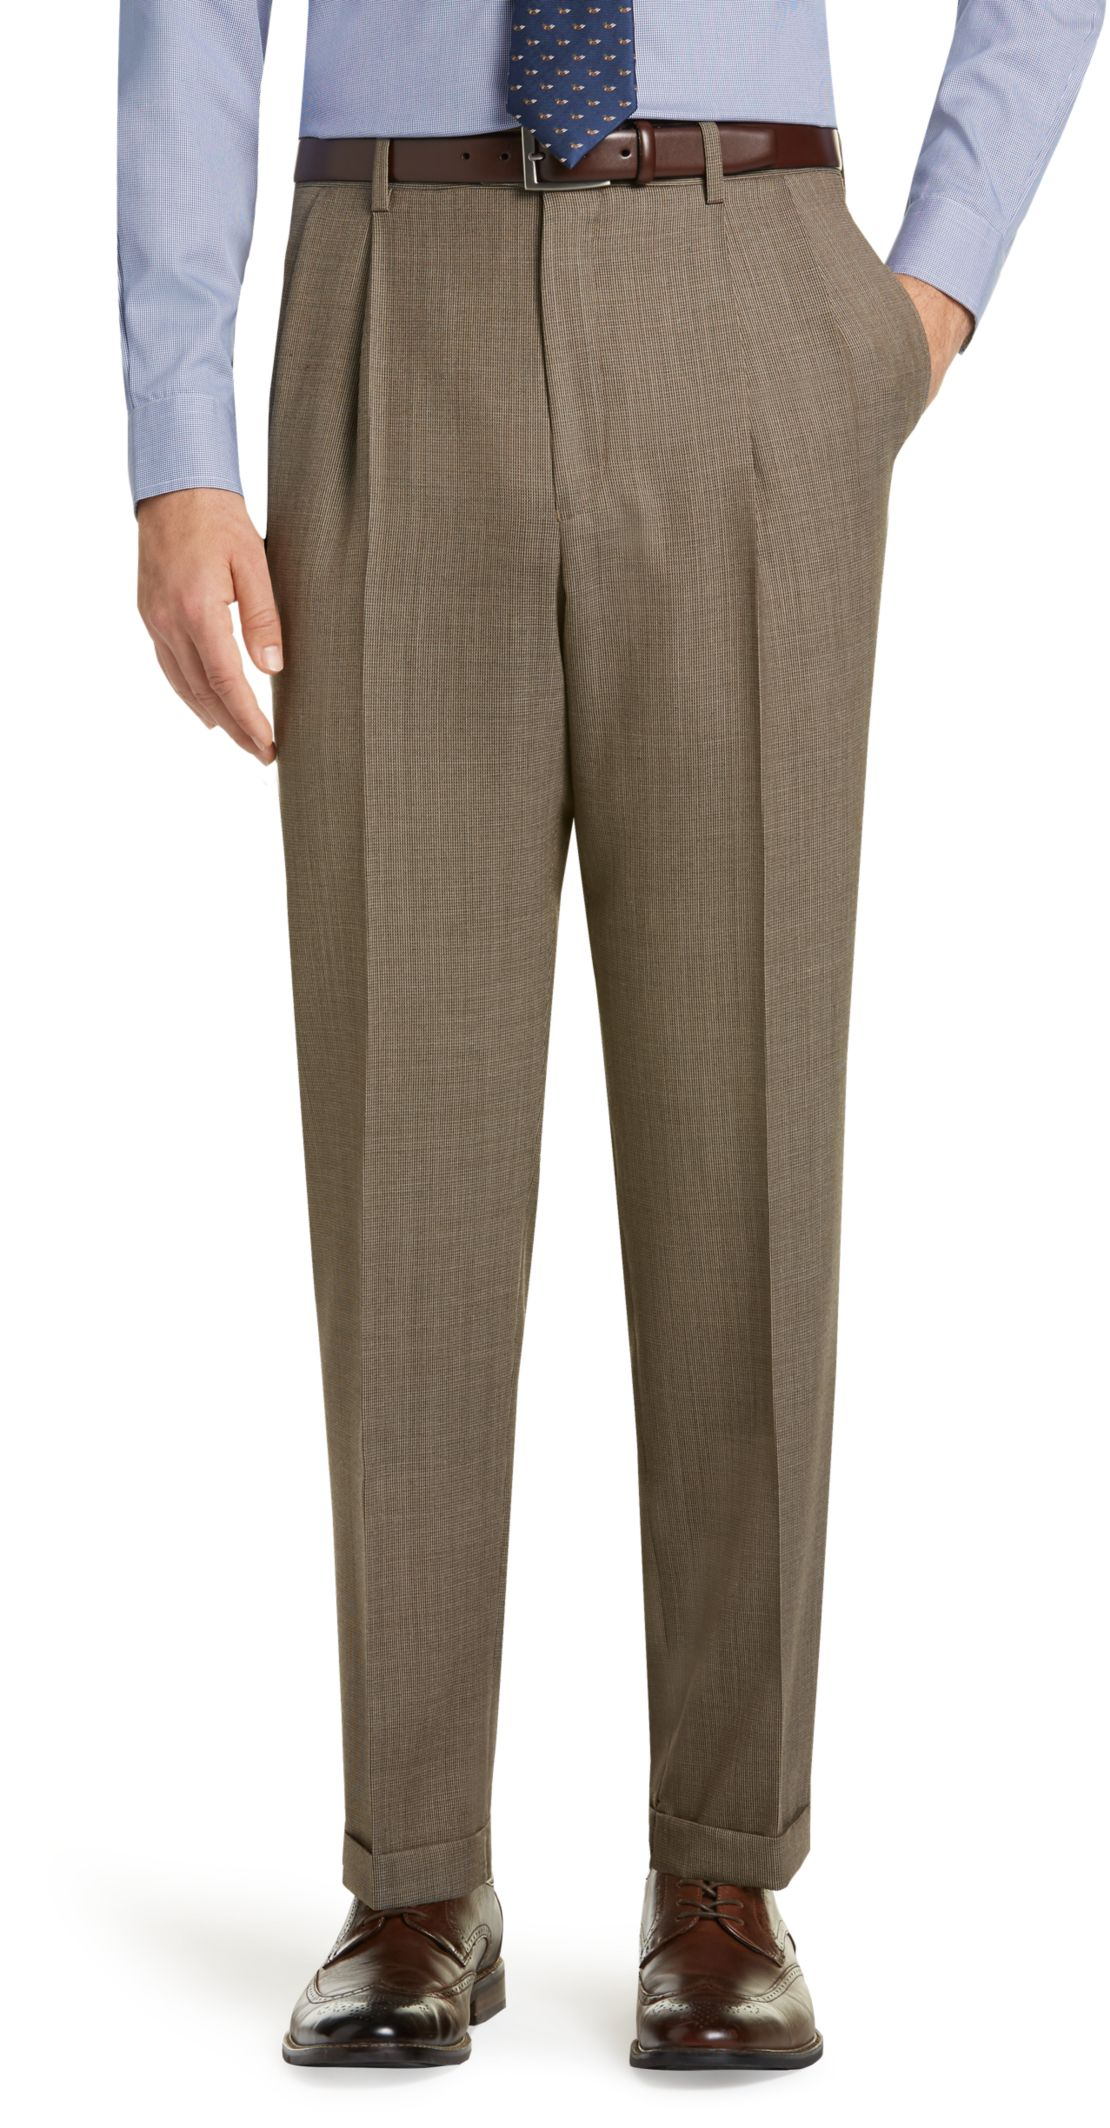 What Color Slacks With Brown Shoes